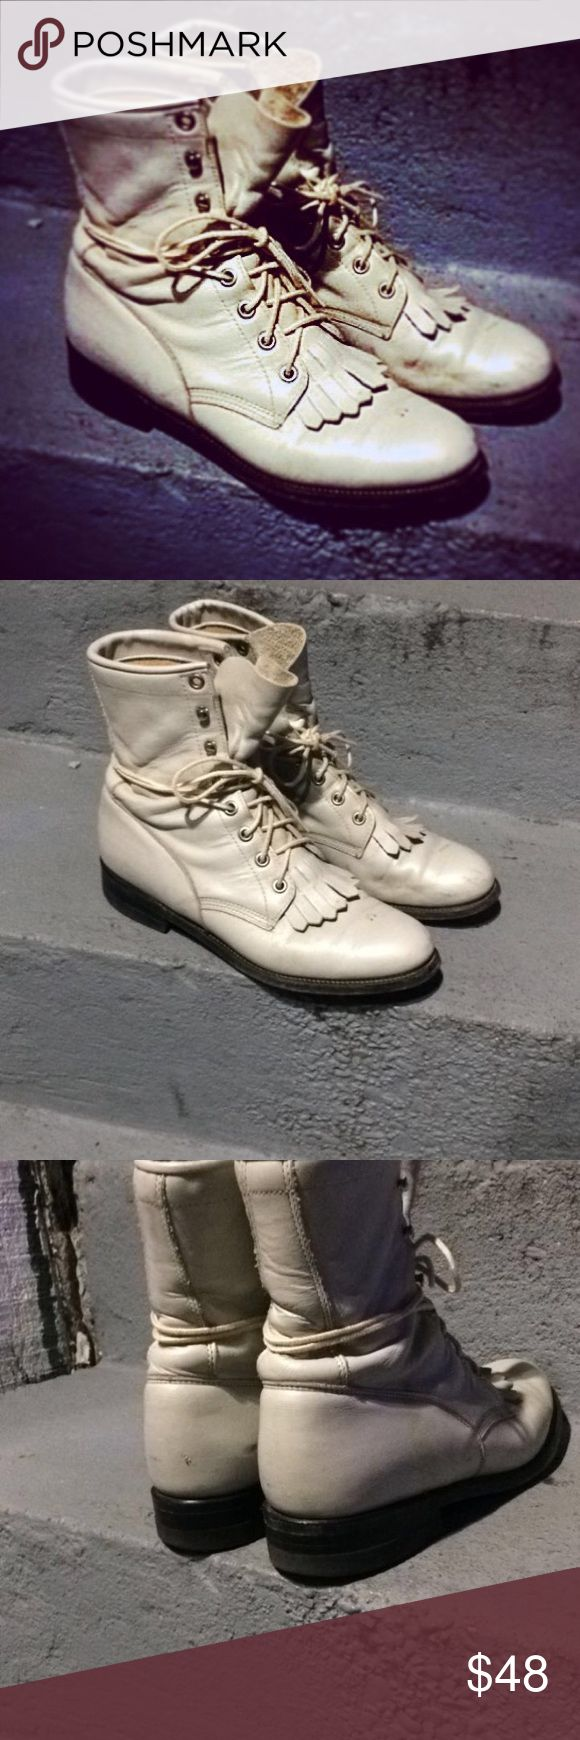 100% genuine leather vintage Justin boots! Vintage Justin brand roper boots in white are available in a women's size 6 1/2. They're in good vintage condition, with only a few minor scuffs as shown in the photos. These boots have been well loved and are ready to find a new awesome home! Feel free to ask me any questions & thanks for shopping my closet! Vintage Shoes Lace Up Boots